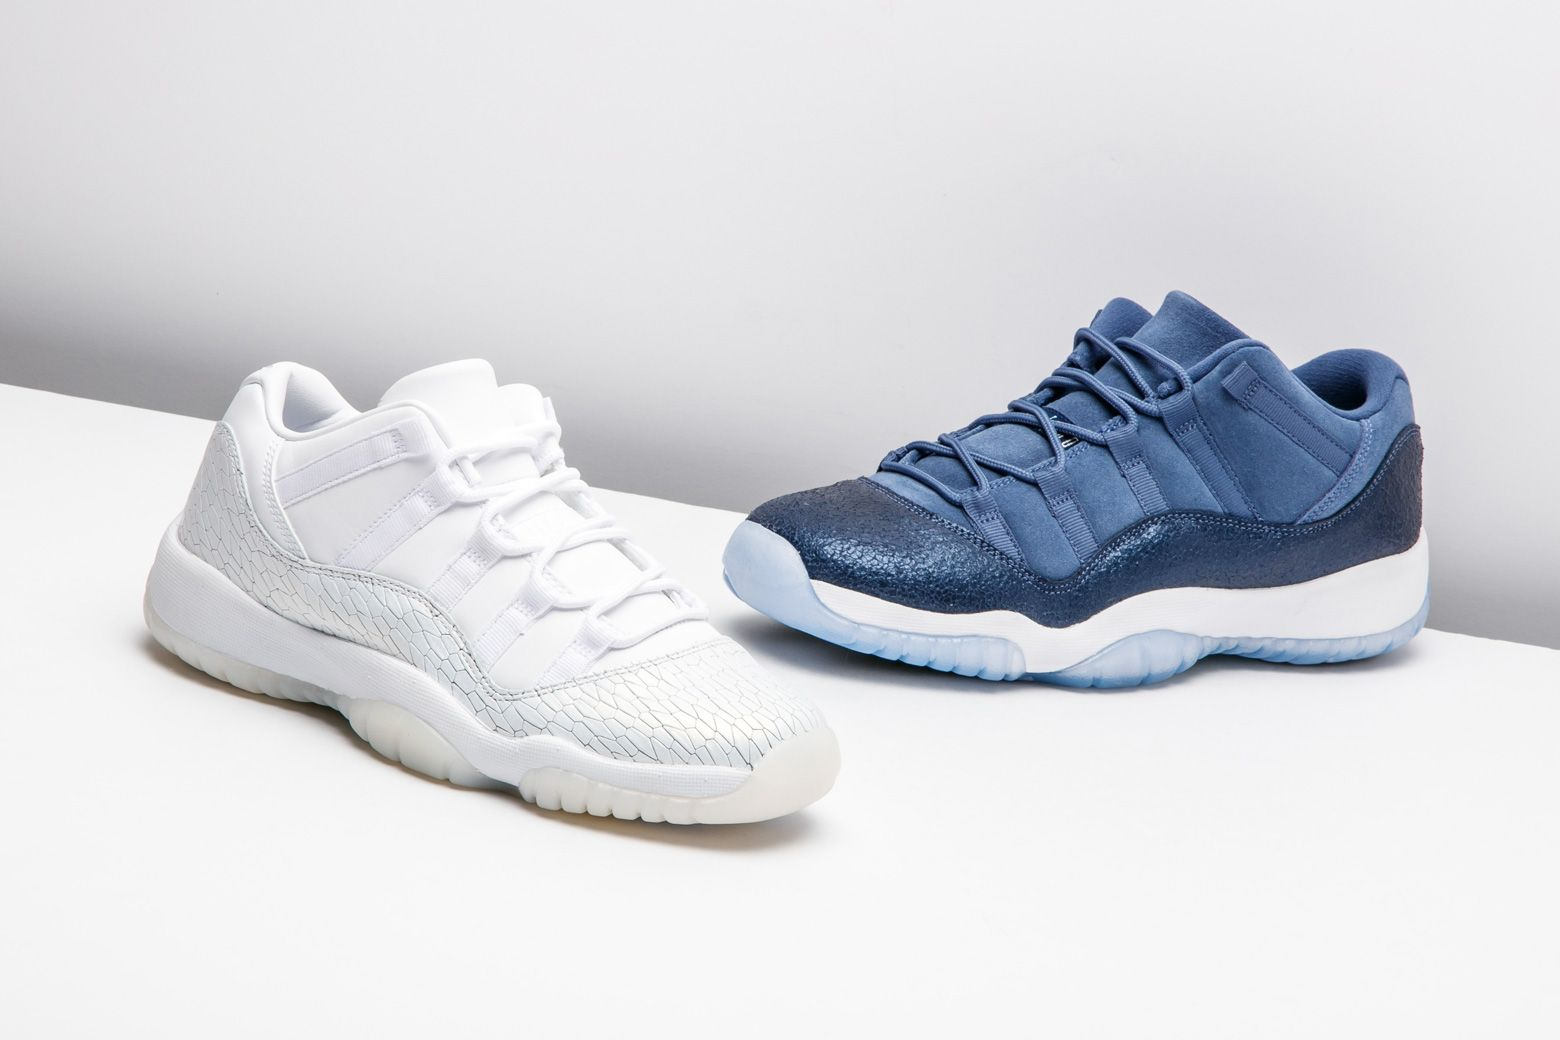 7b53d5d56bf Ladies, which of these women's exclusive Air Jordan 11 Retro Low colorways  is the best?